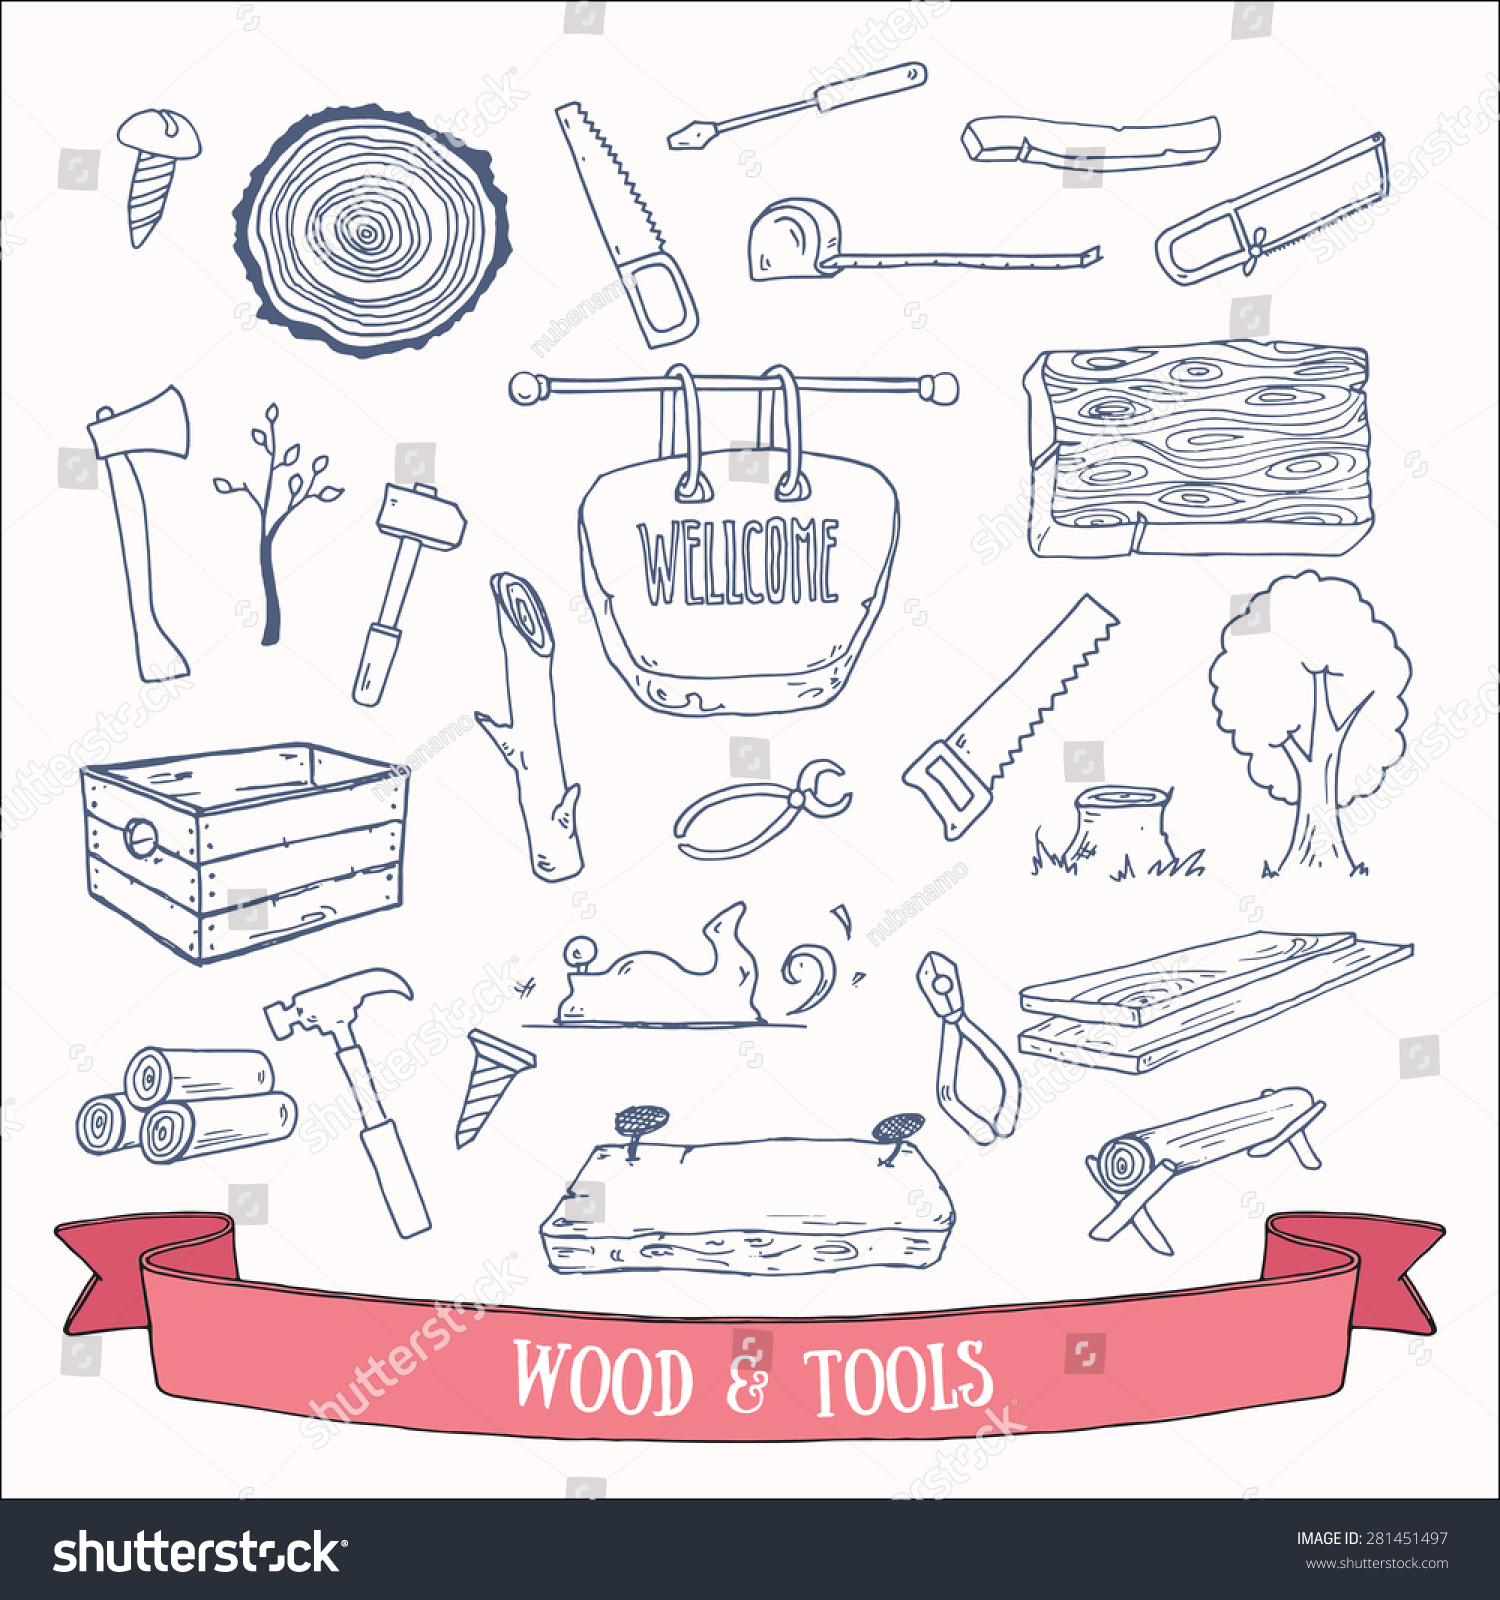 Woodworking Lumberjack Tools Vector Doodles Hand Stock Vector